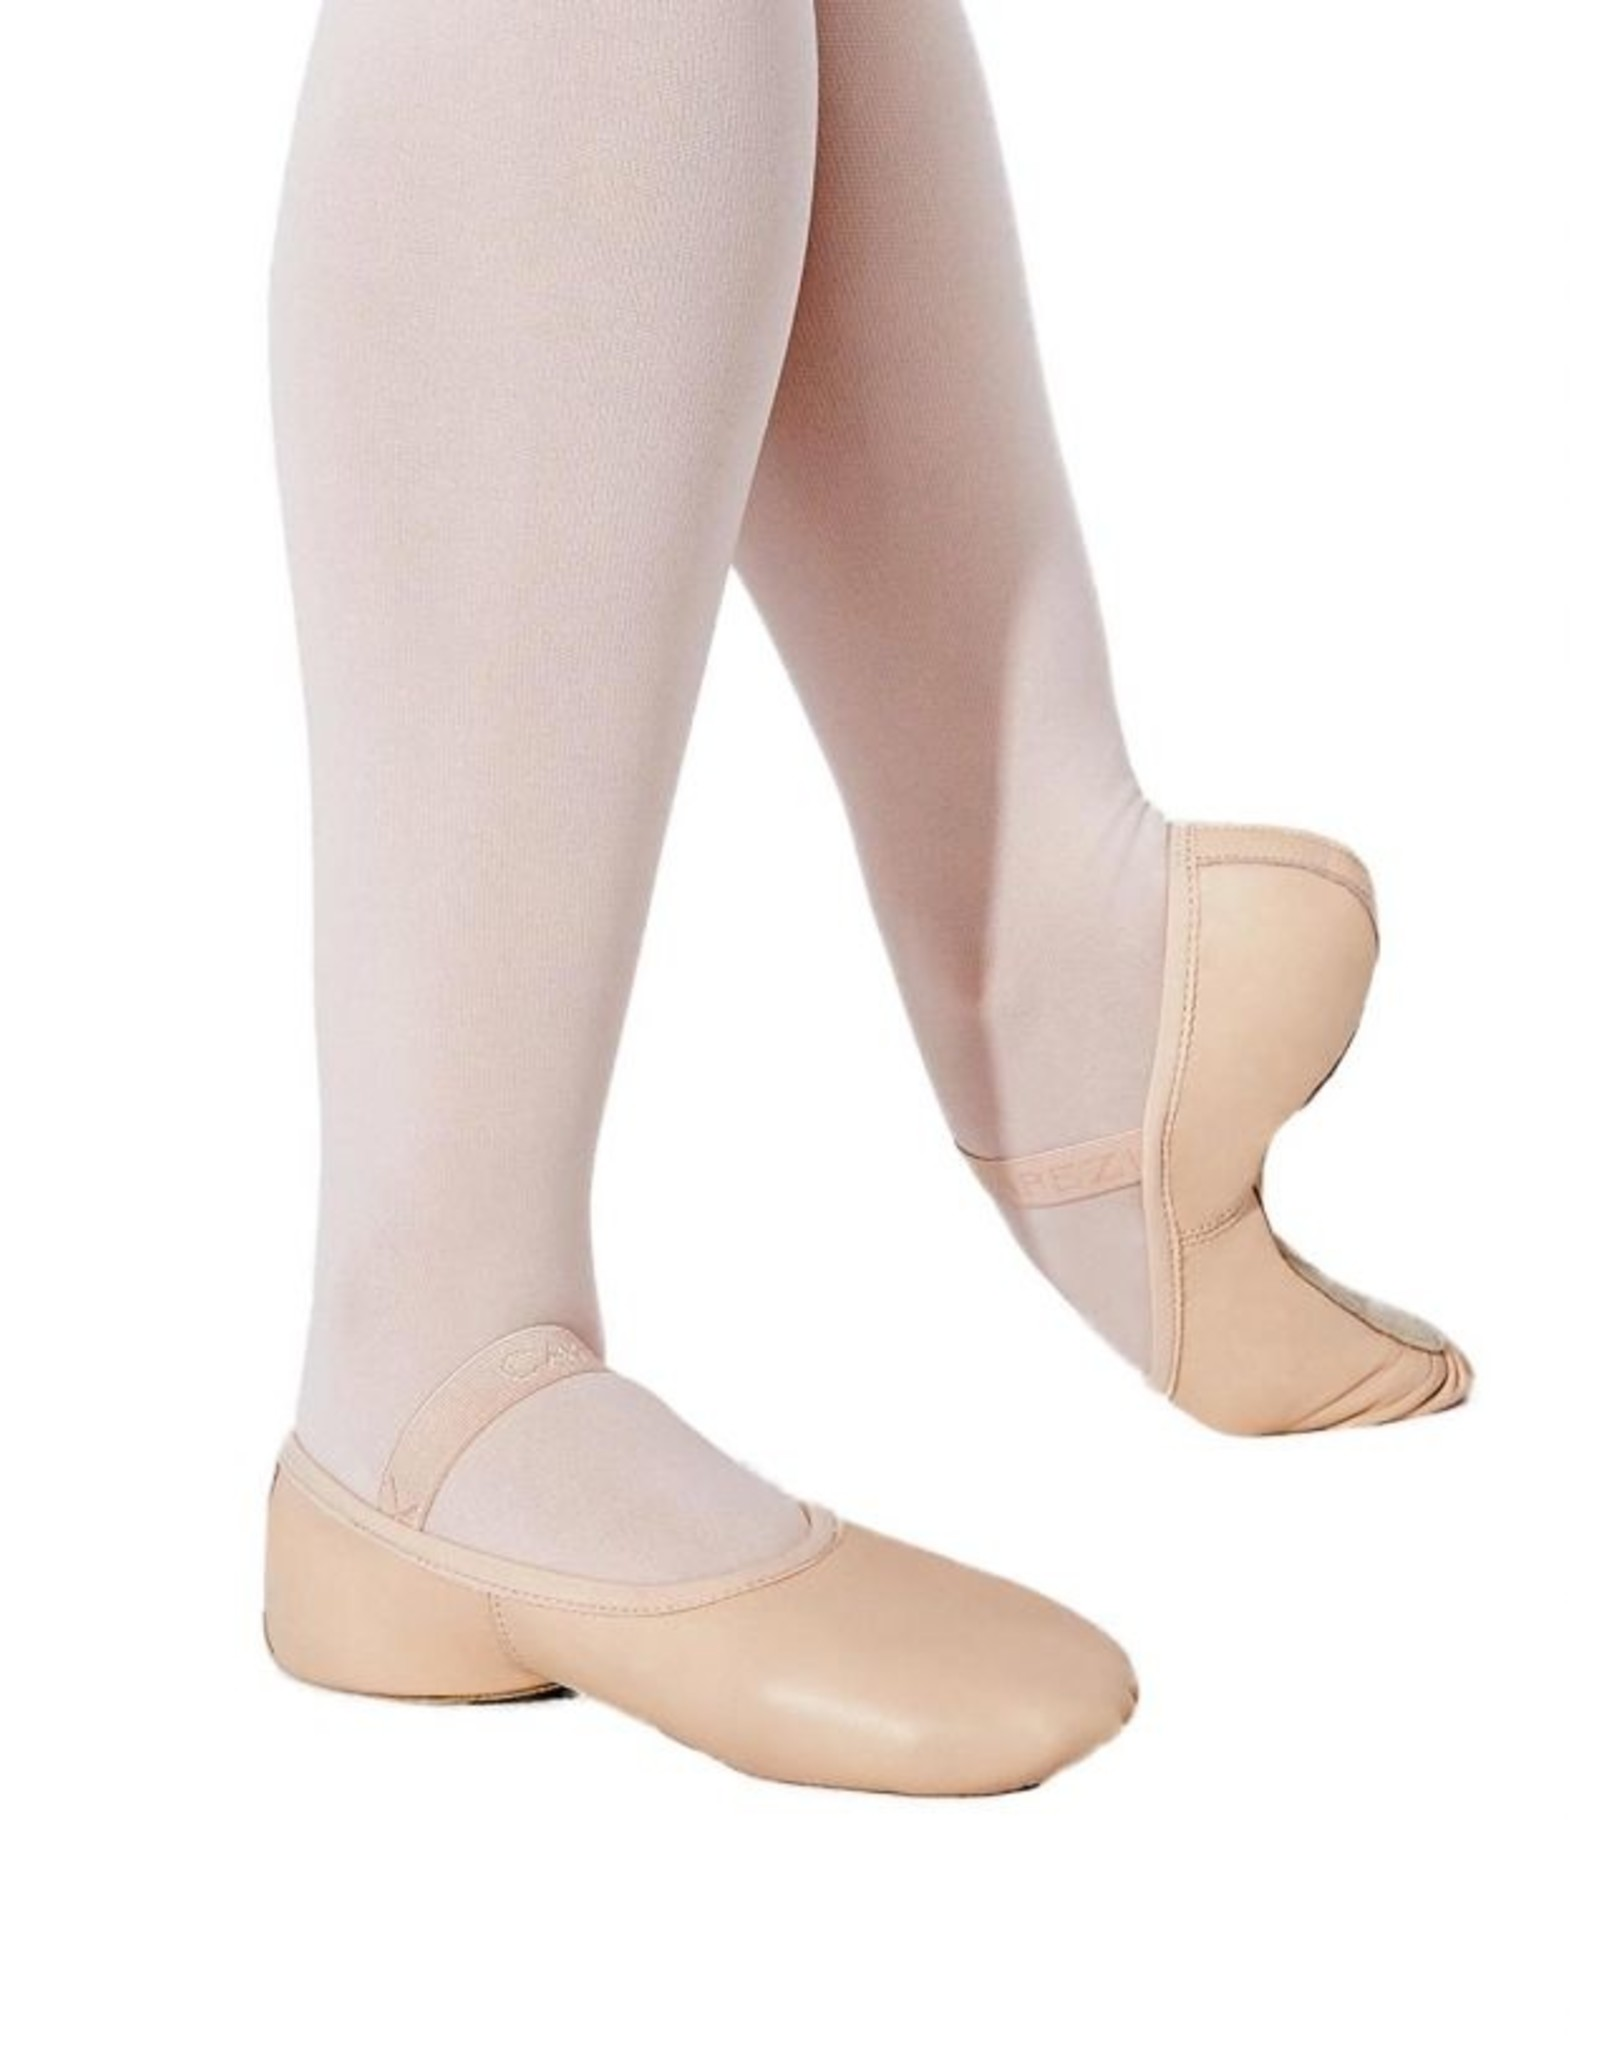 ADULT LILY FULL SOLE LEATHER BALLET SLIPPER